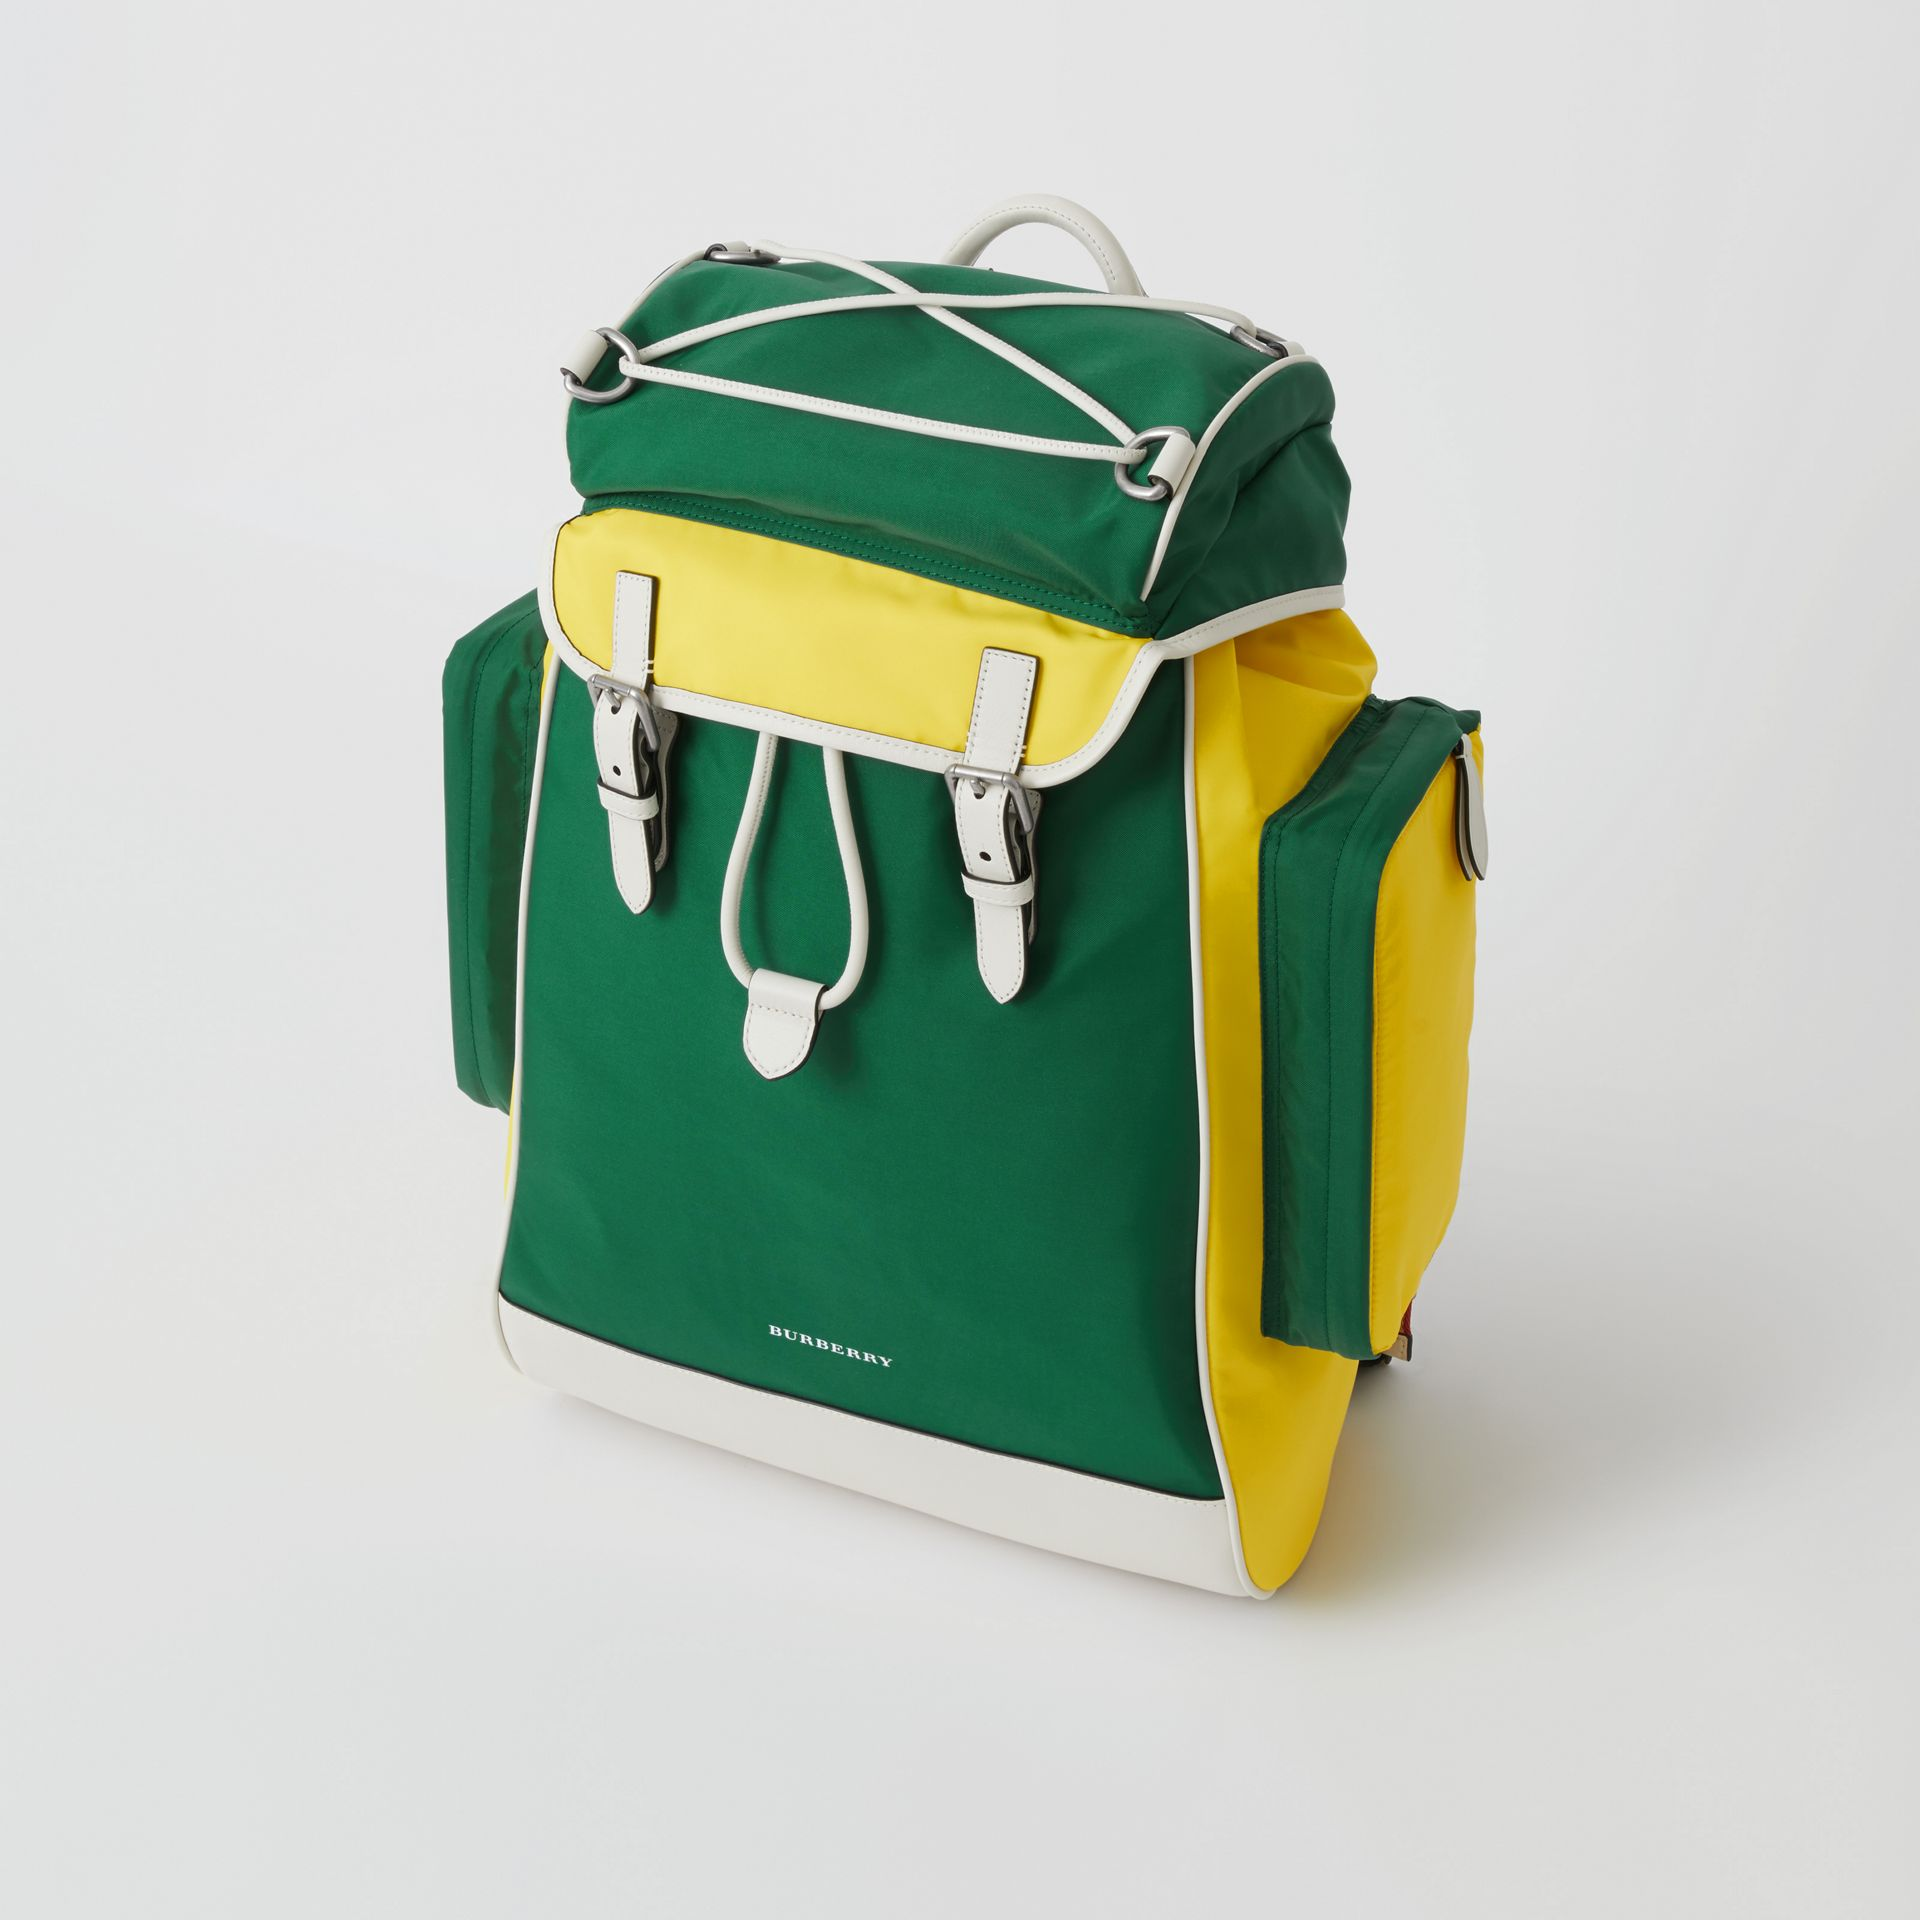 Tri-tone Nylon and Leather Backpack in Pine Green - Men | Burberry - gallery image 4